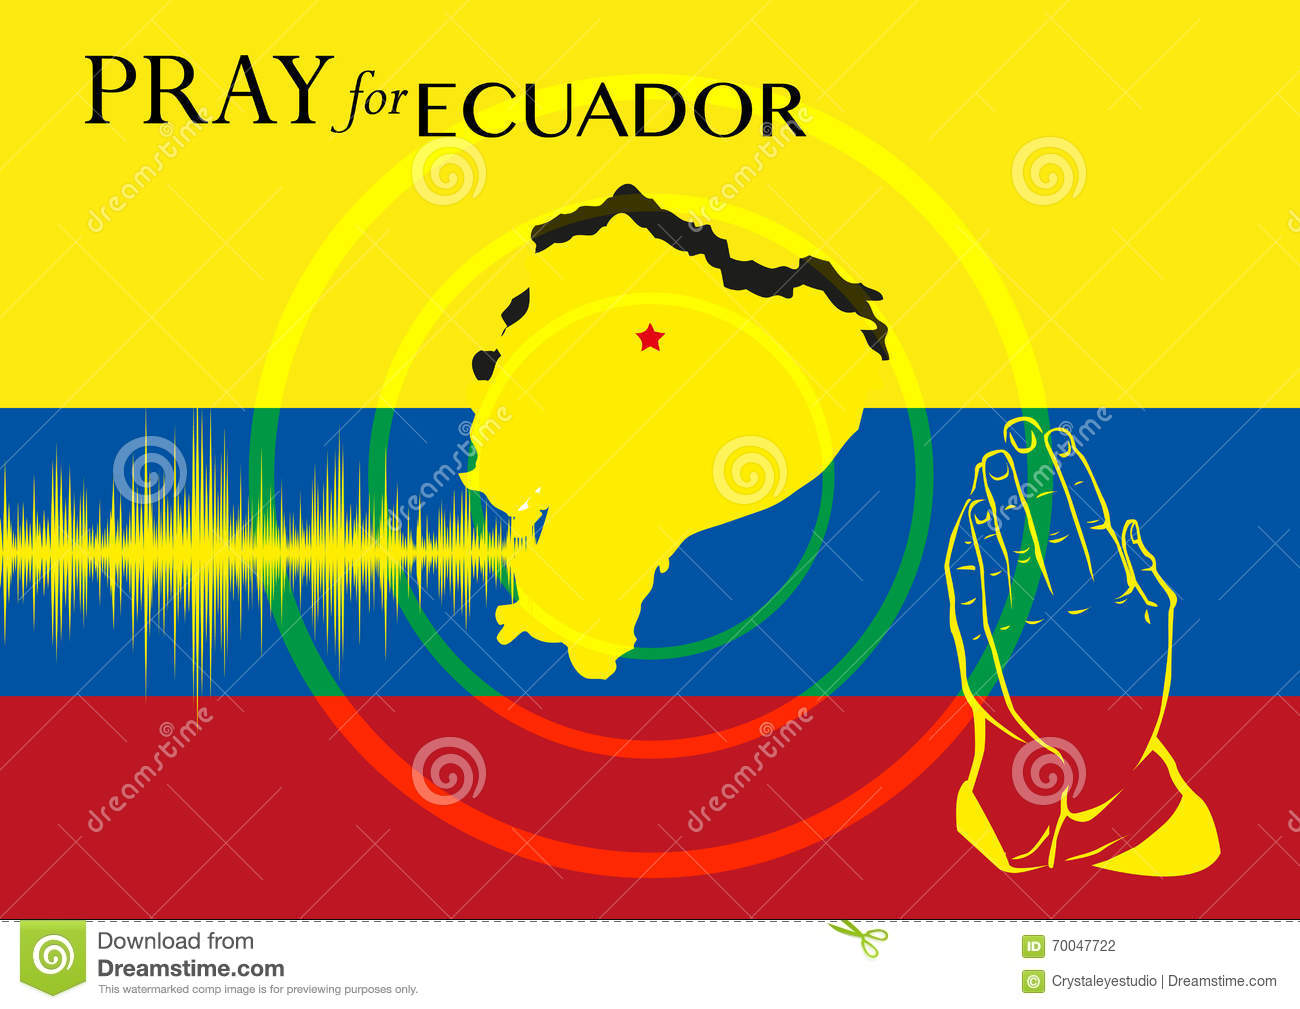 Pray For Ecuador. Relief Operation Or Support For Earthquake.